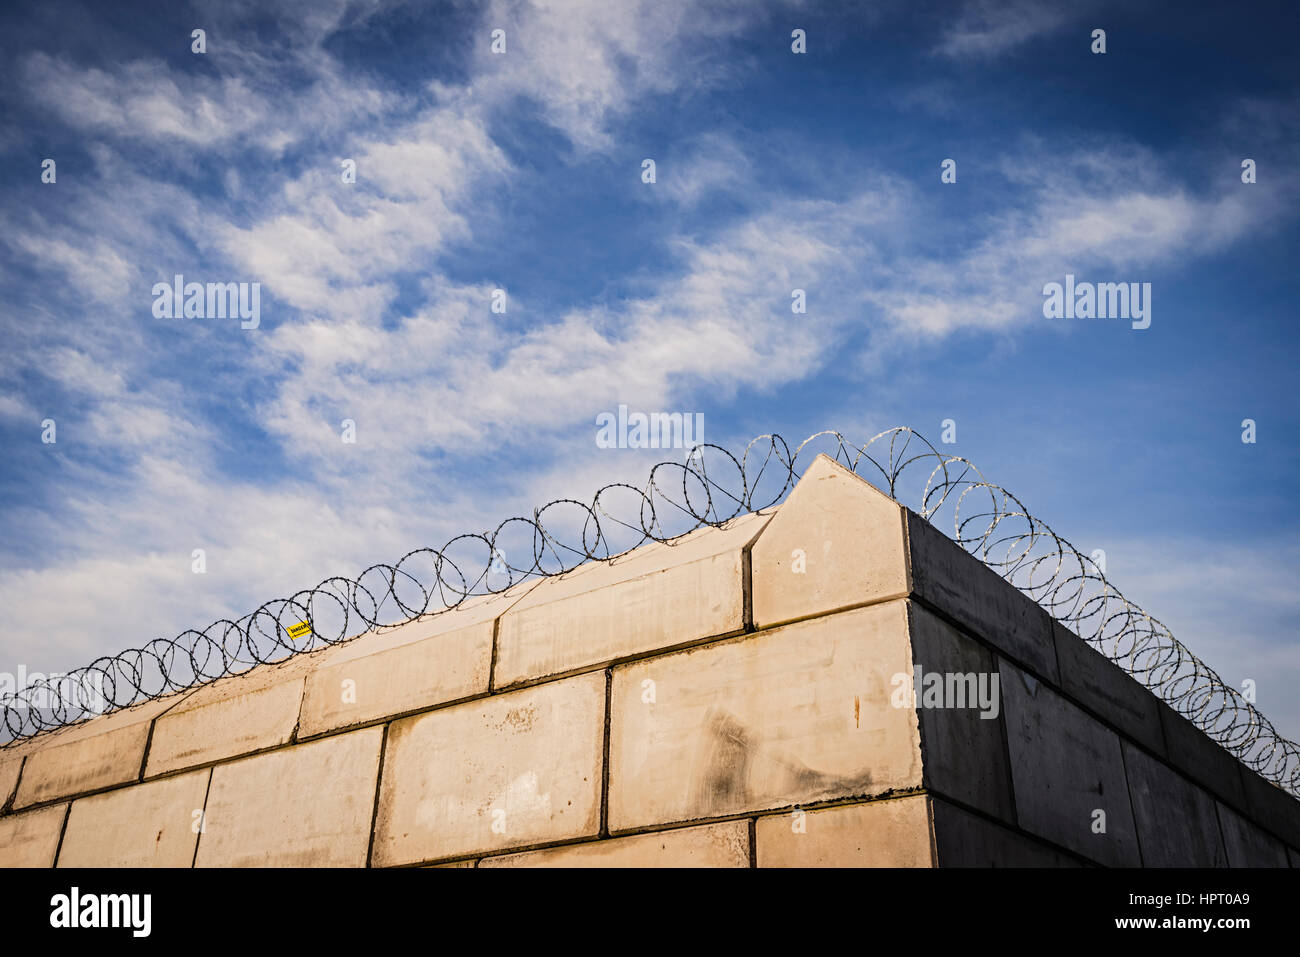 A wall topped with protective coils of razor wire - Stock Image